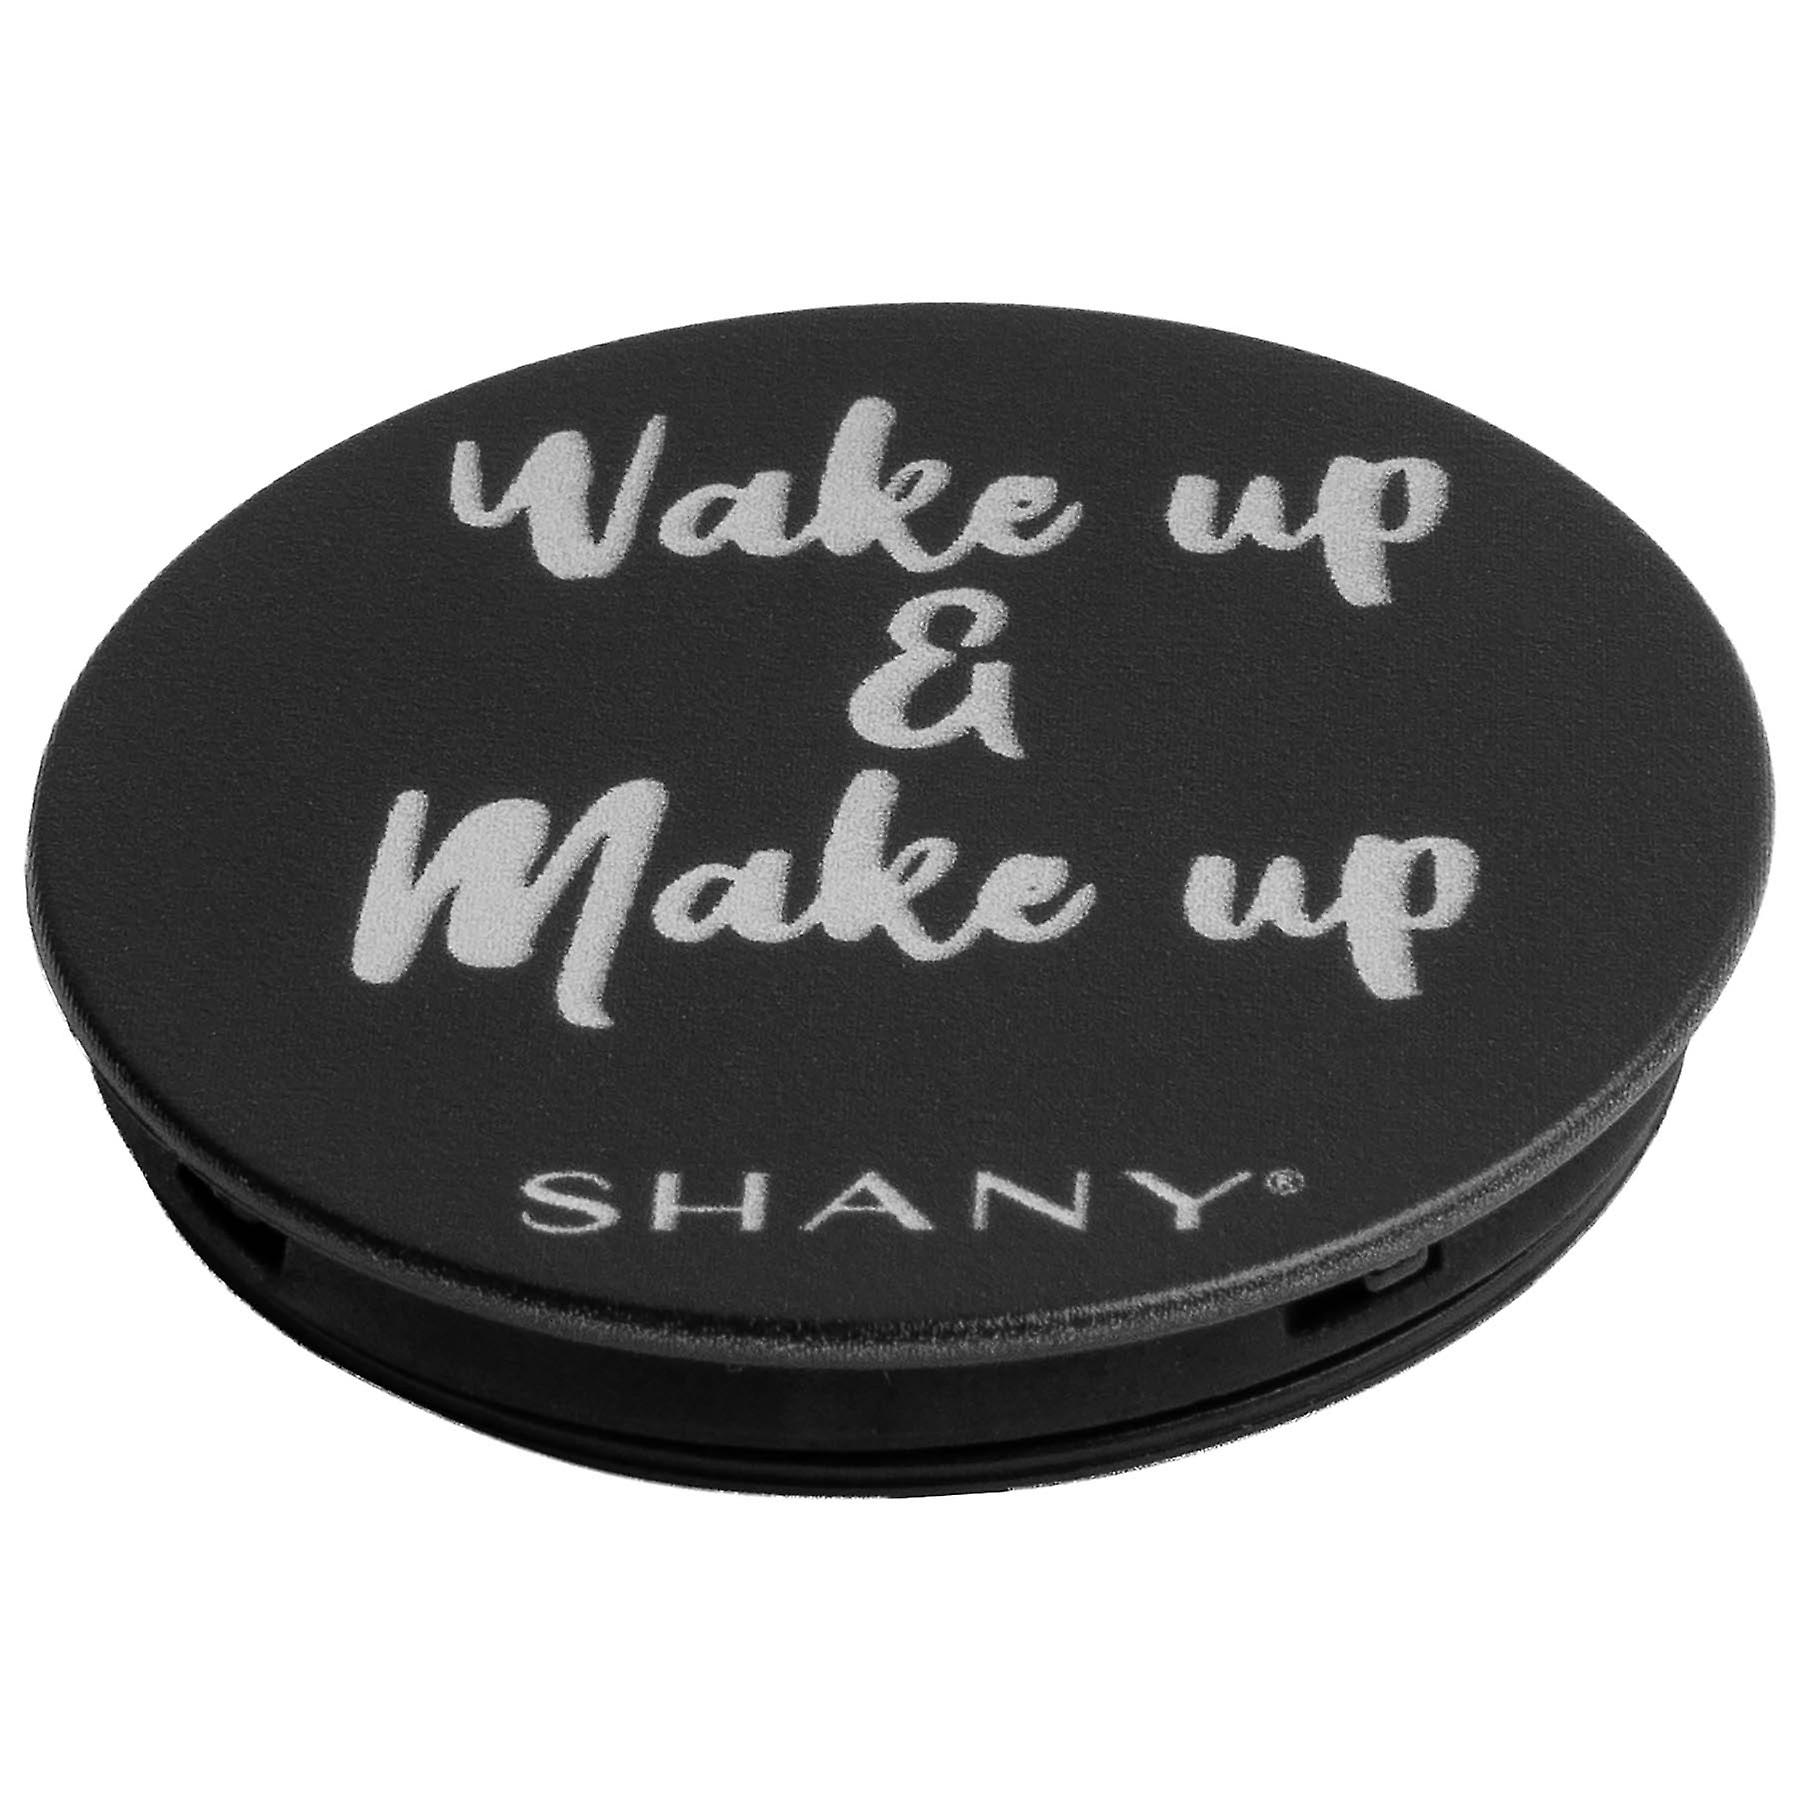 SHANY Mobile Phone Holder - Collapsible iPhone or Samsung Phone Grip & Stand with Custom Makeup Quote - WAKE UP AND MAKEUP